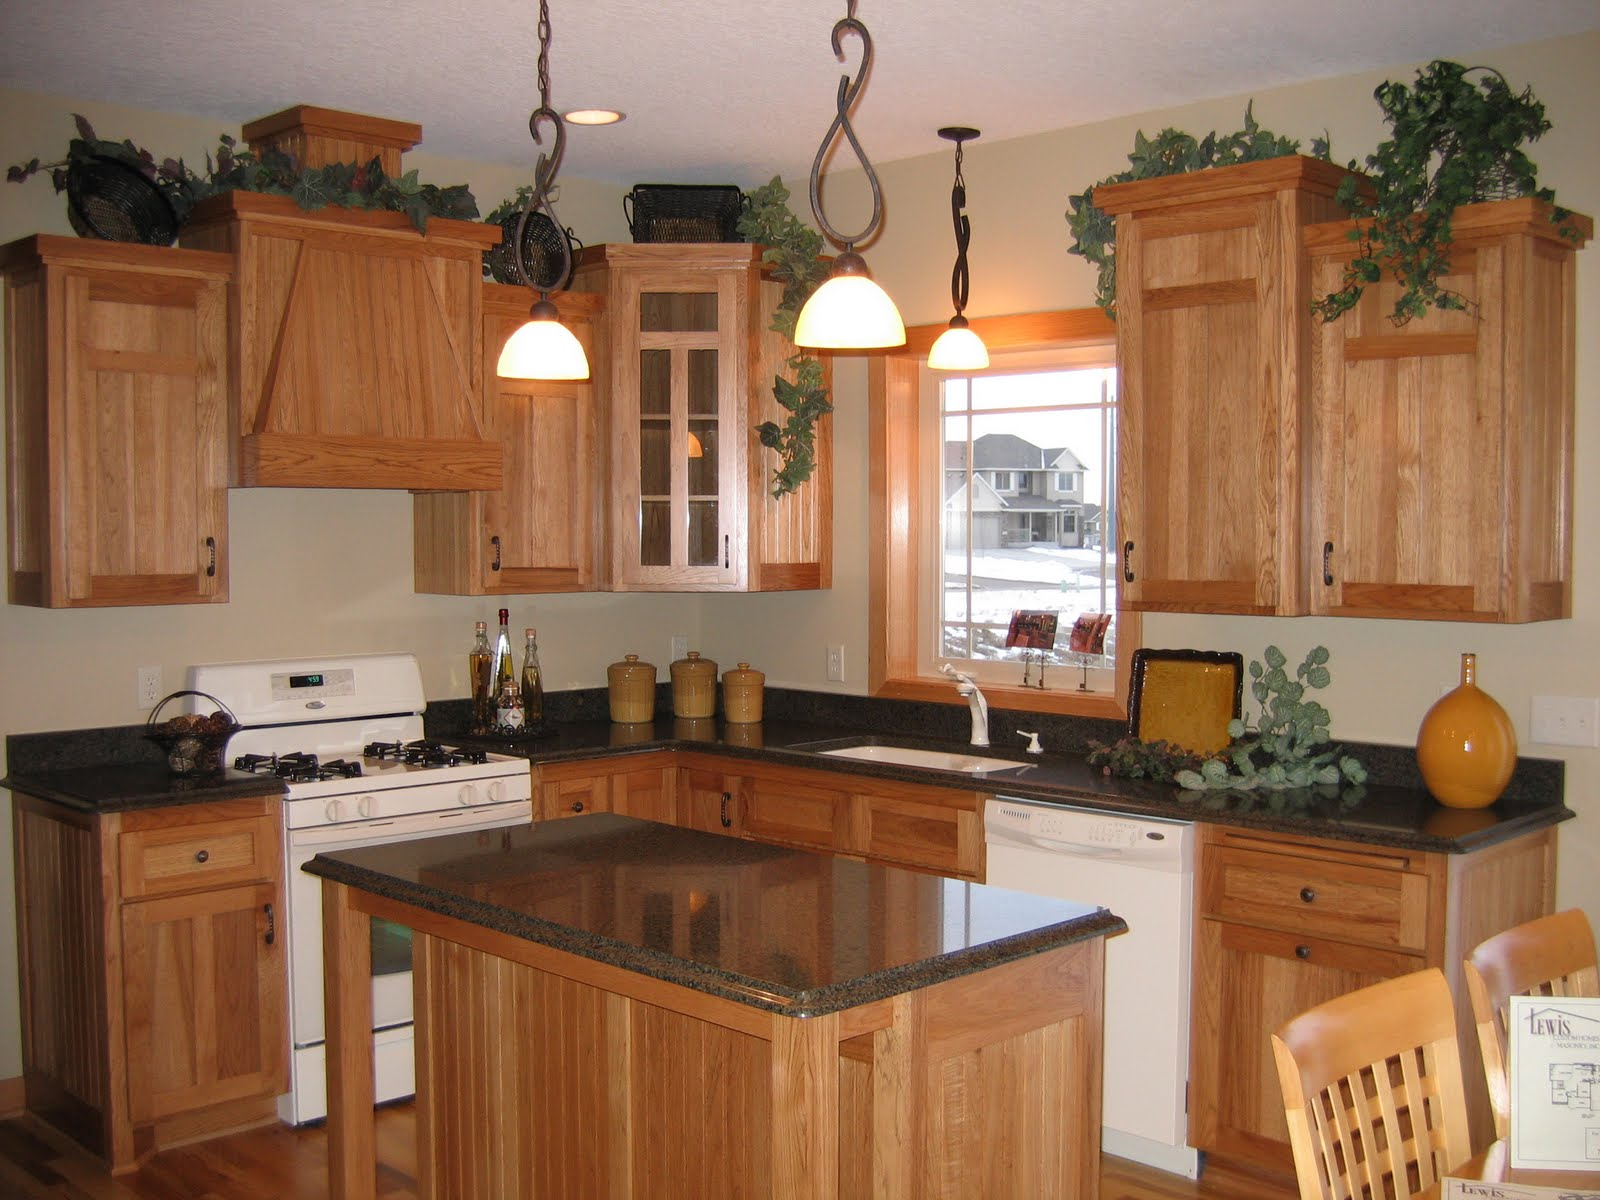 kitchen cabinets sarasota fl kitchen cabinets kitchen cabinets sarasota florida 21161